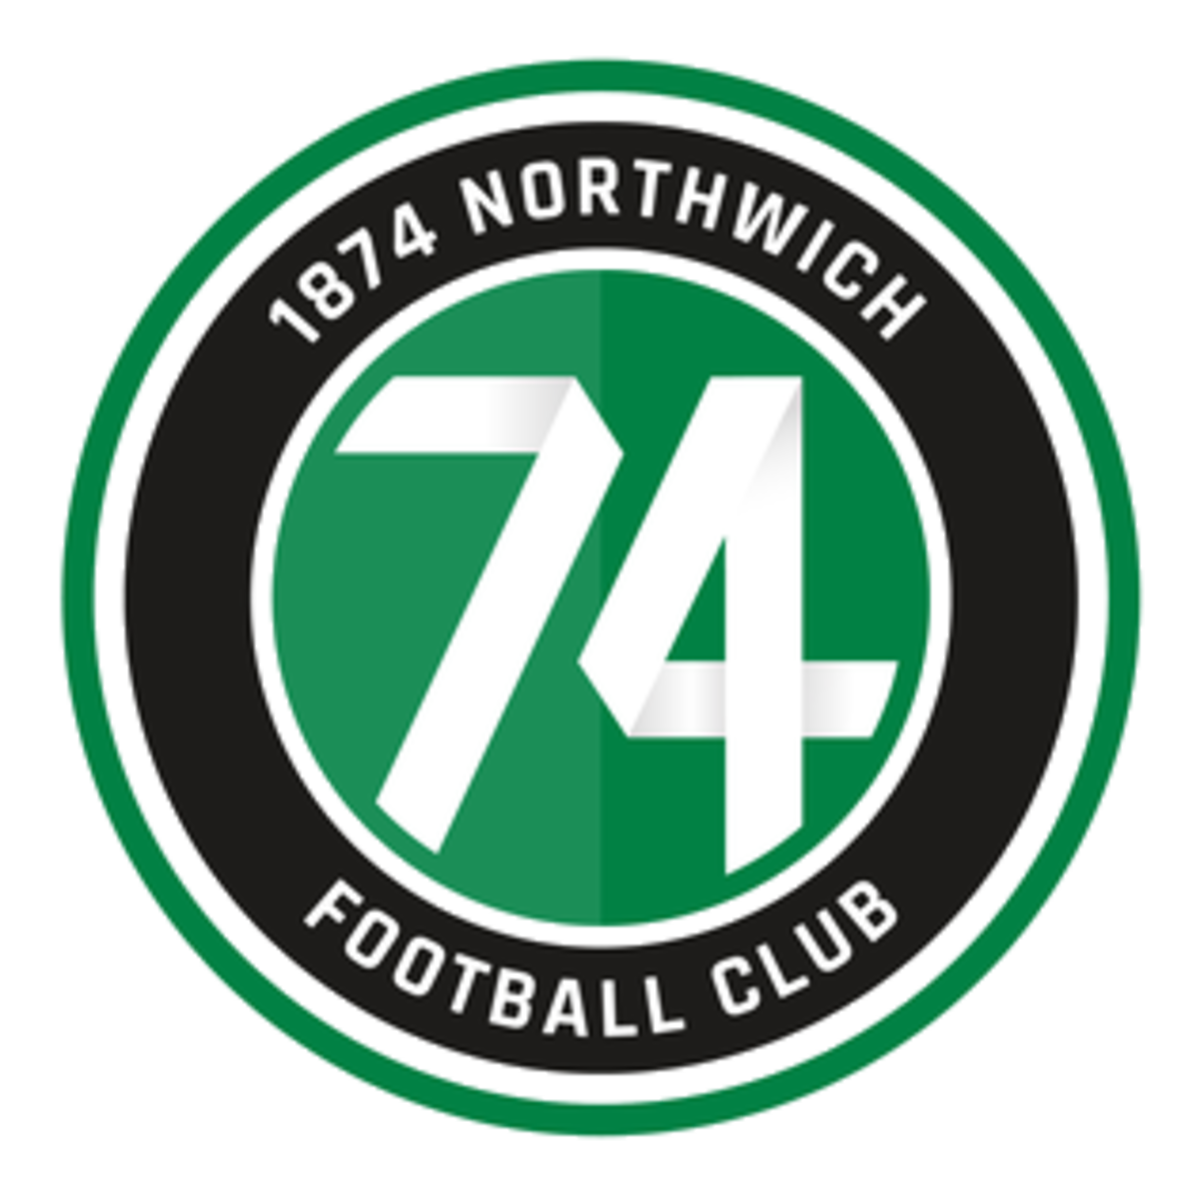 https://upload.wikimedia.org/wikipedia/en/thumb/8/8d/1874_Northwich_FC_badge_%28new%29.png/1200px-1874_Northwich_FC_badge_%28new%29.png